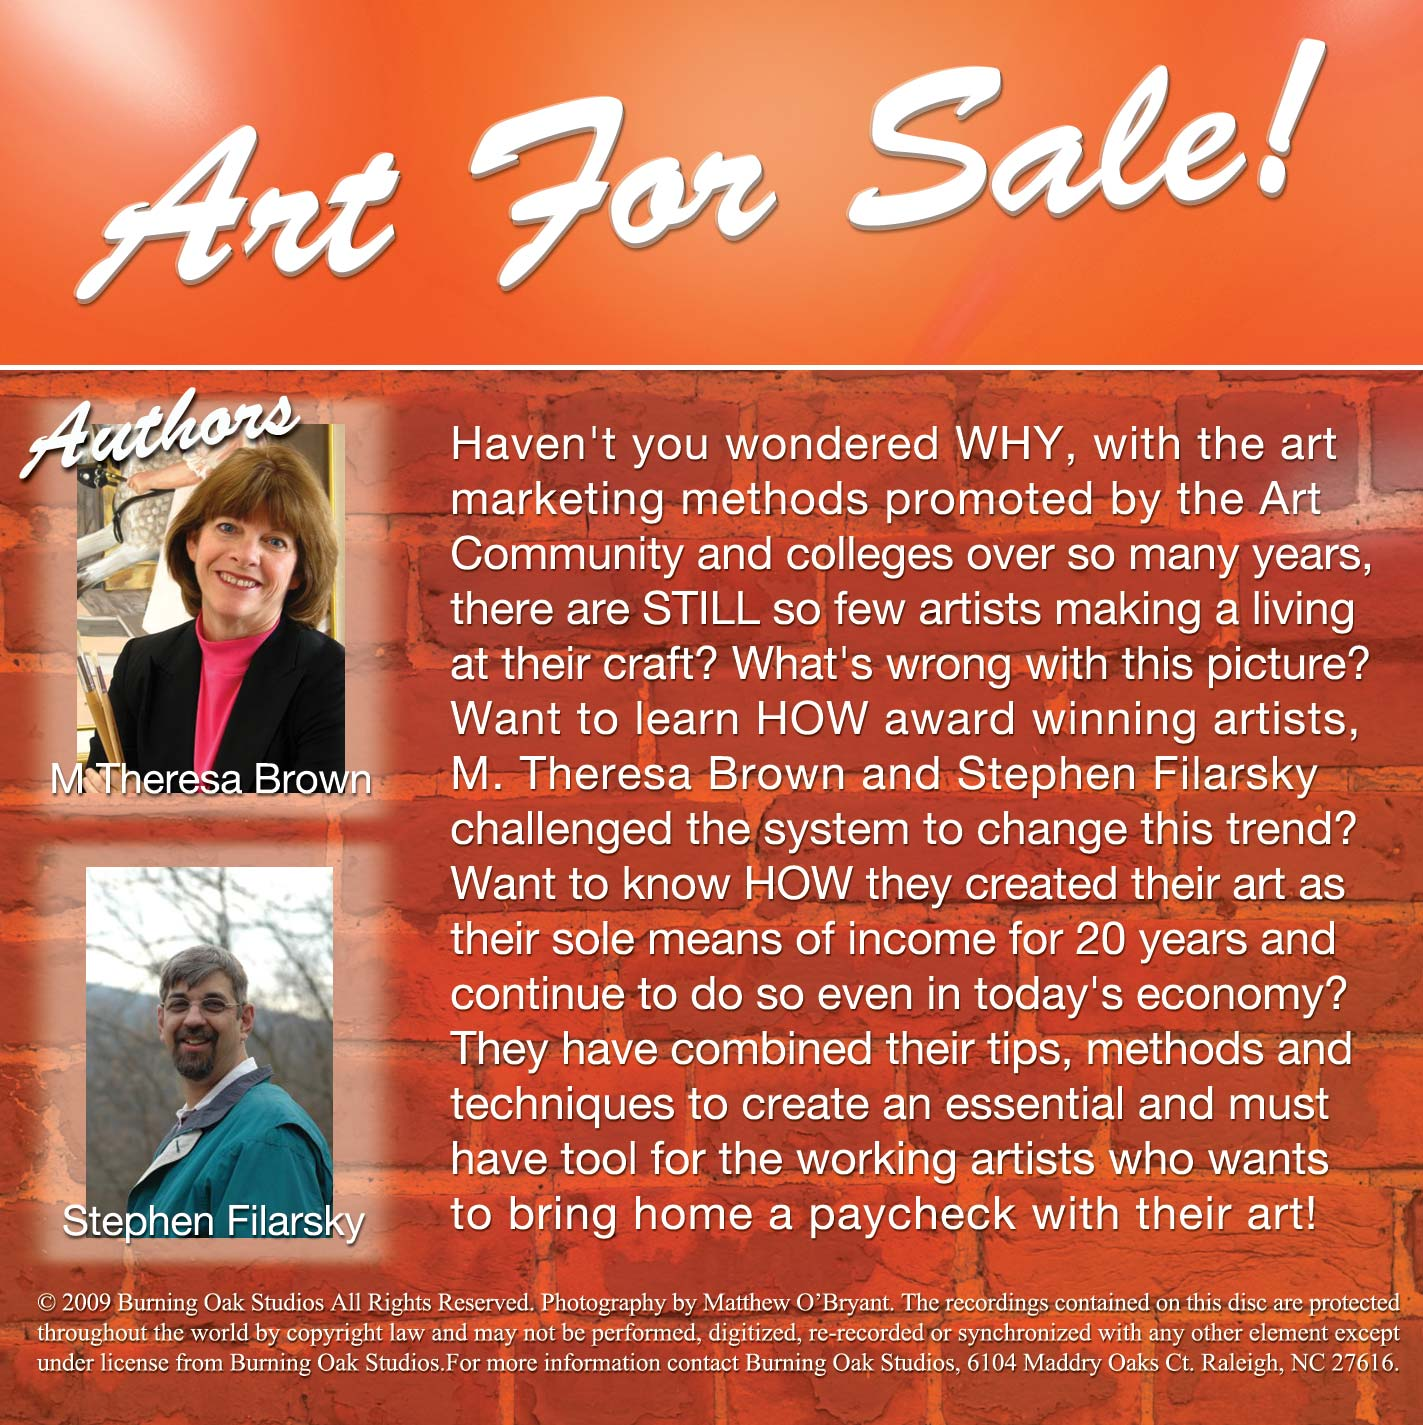 Art for Sale Audio CD Back Panel image